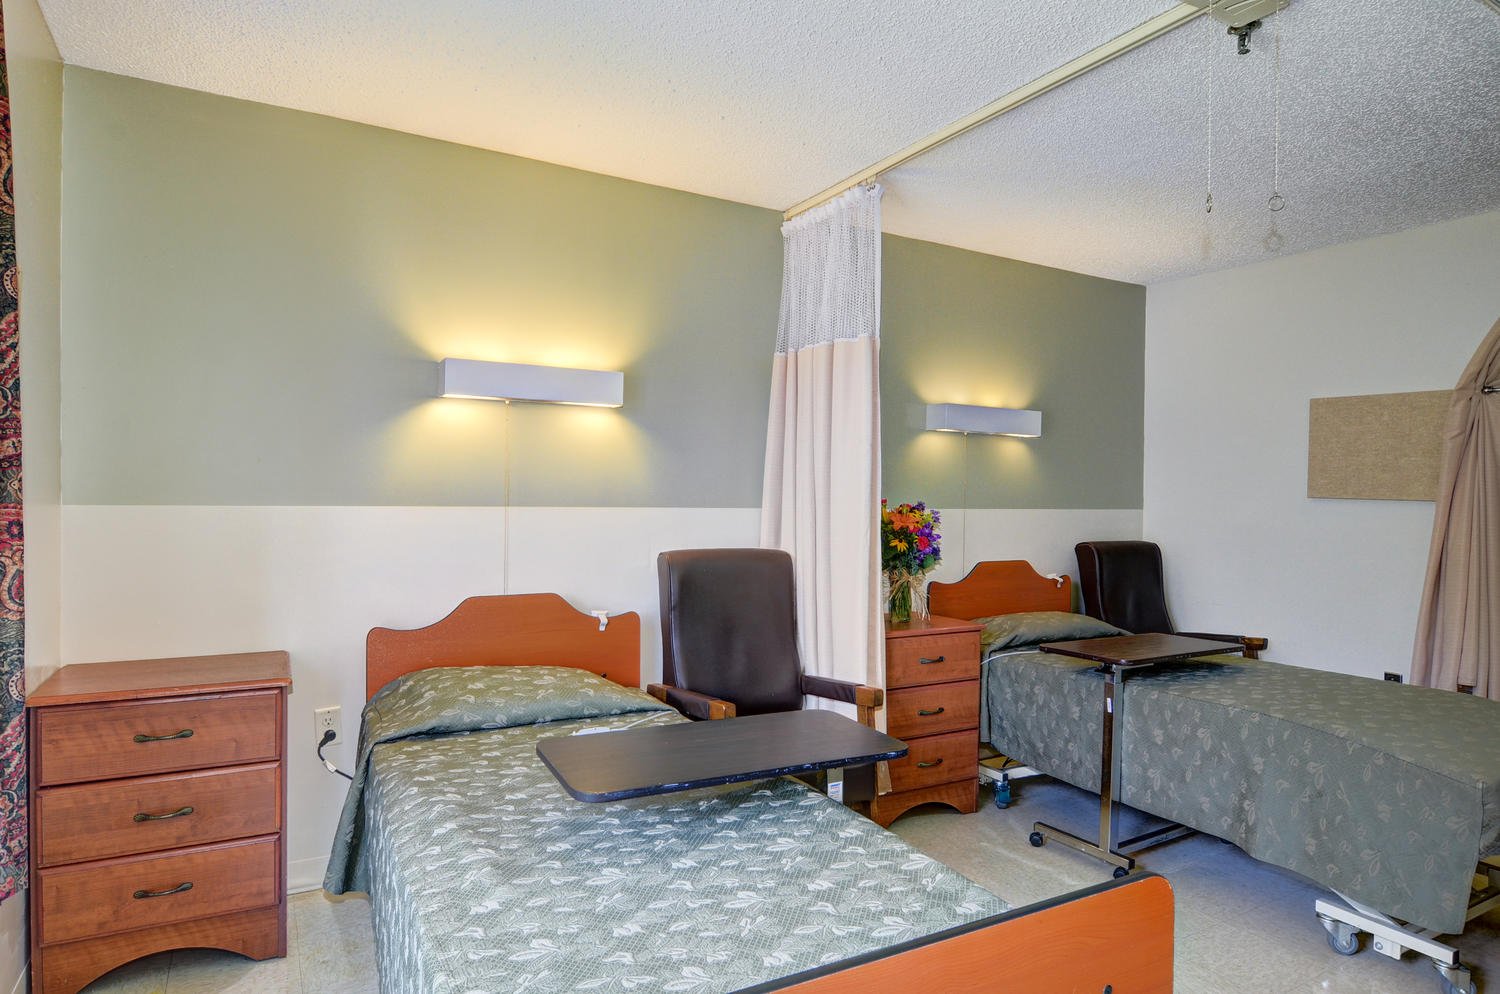 Stonerise Wellsburg patient room with two beds and open curtains